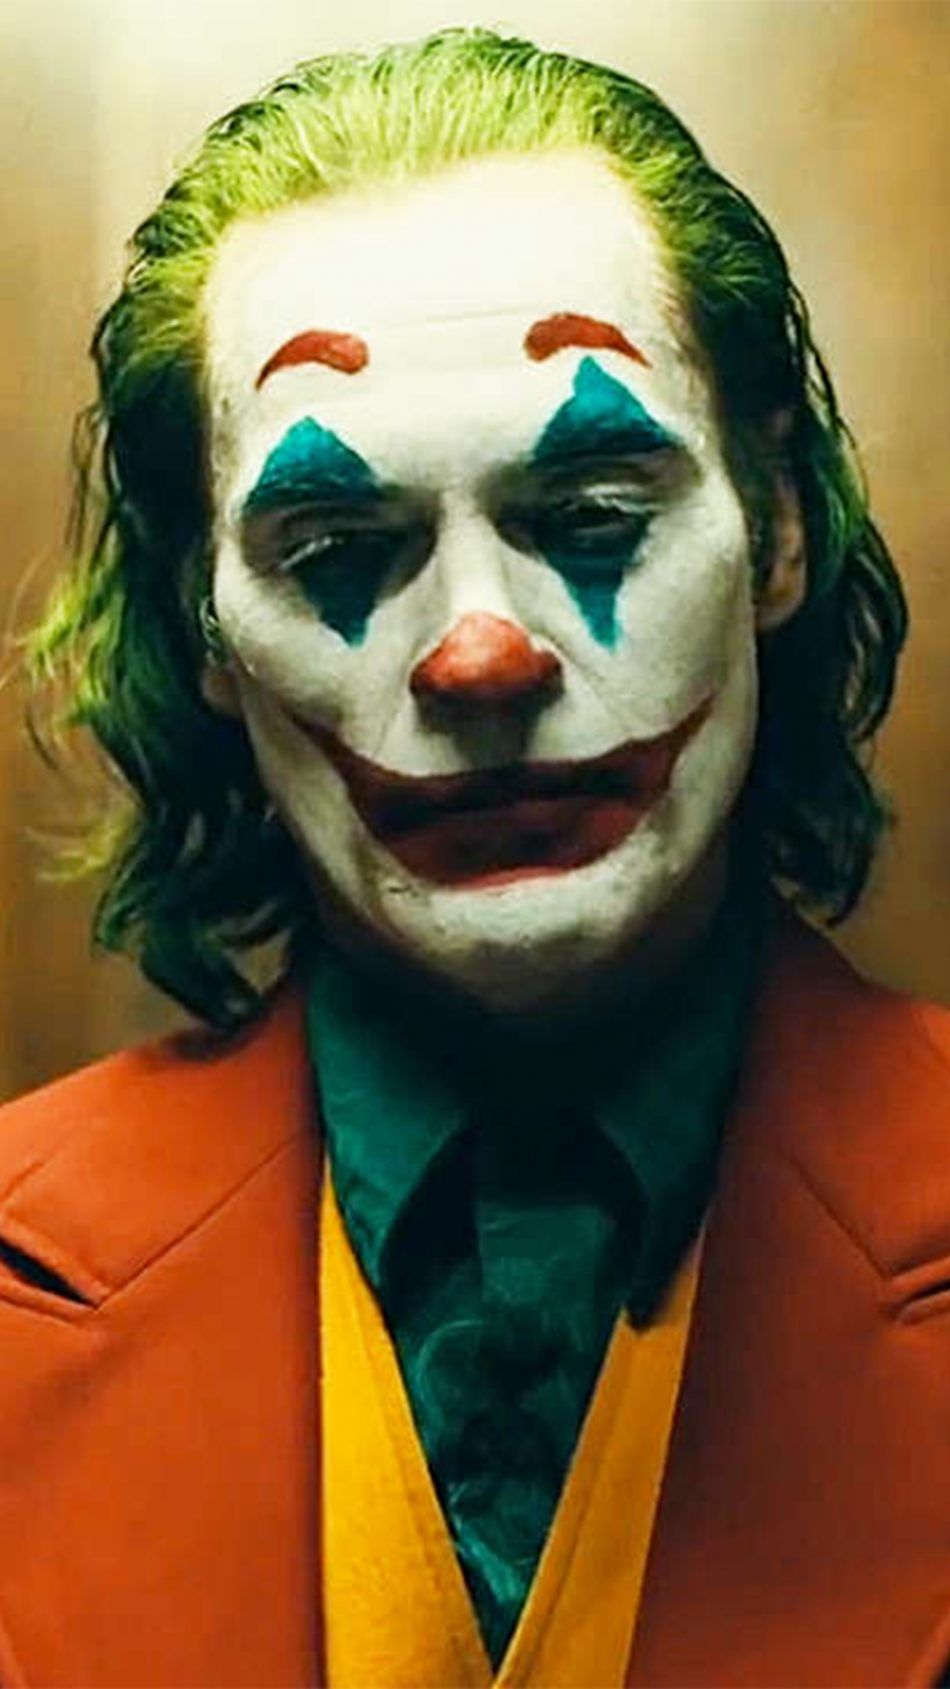 Joker 2019 Wallpapers Top Free Joker 2019 Backgrounds